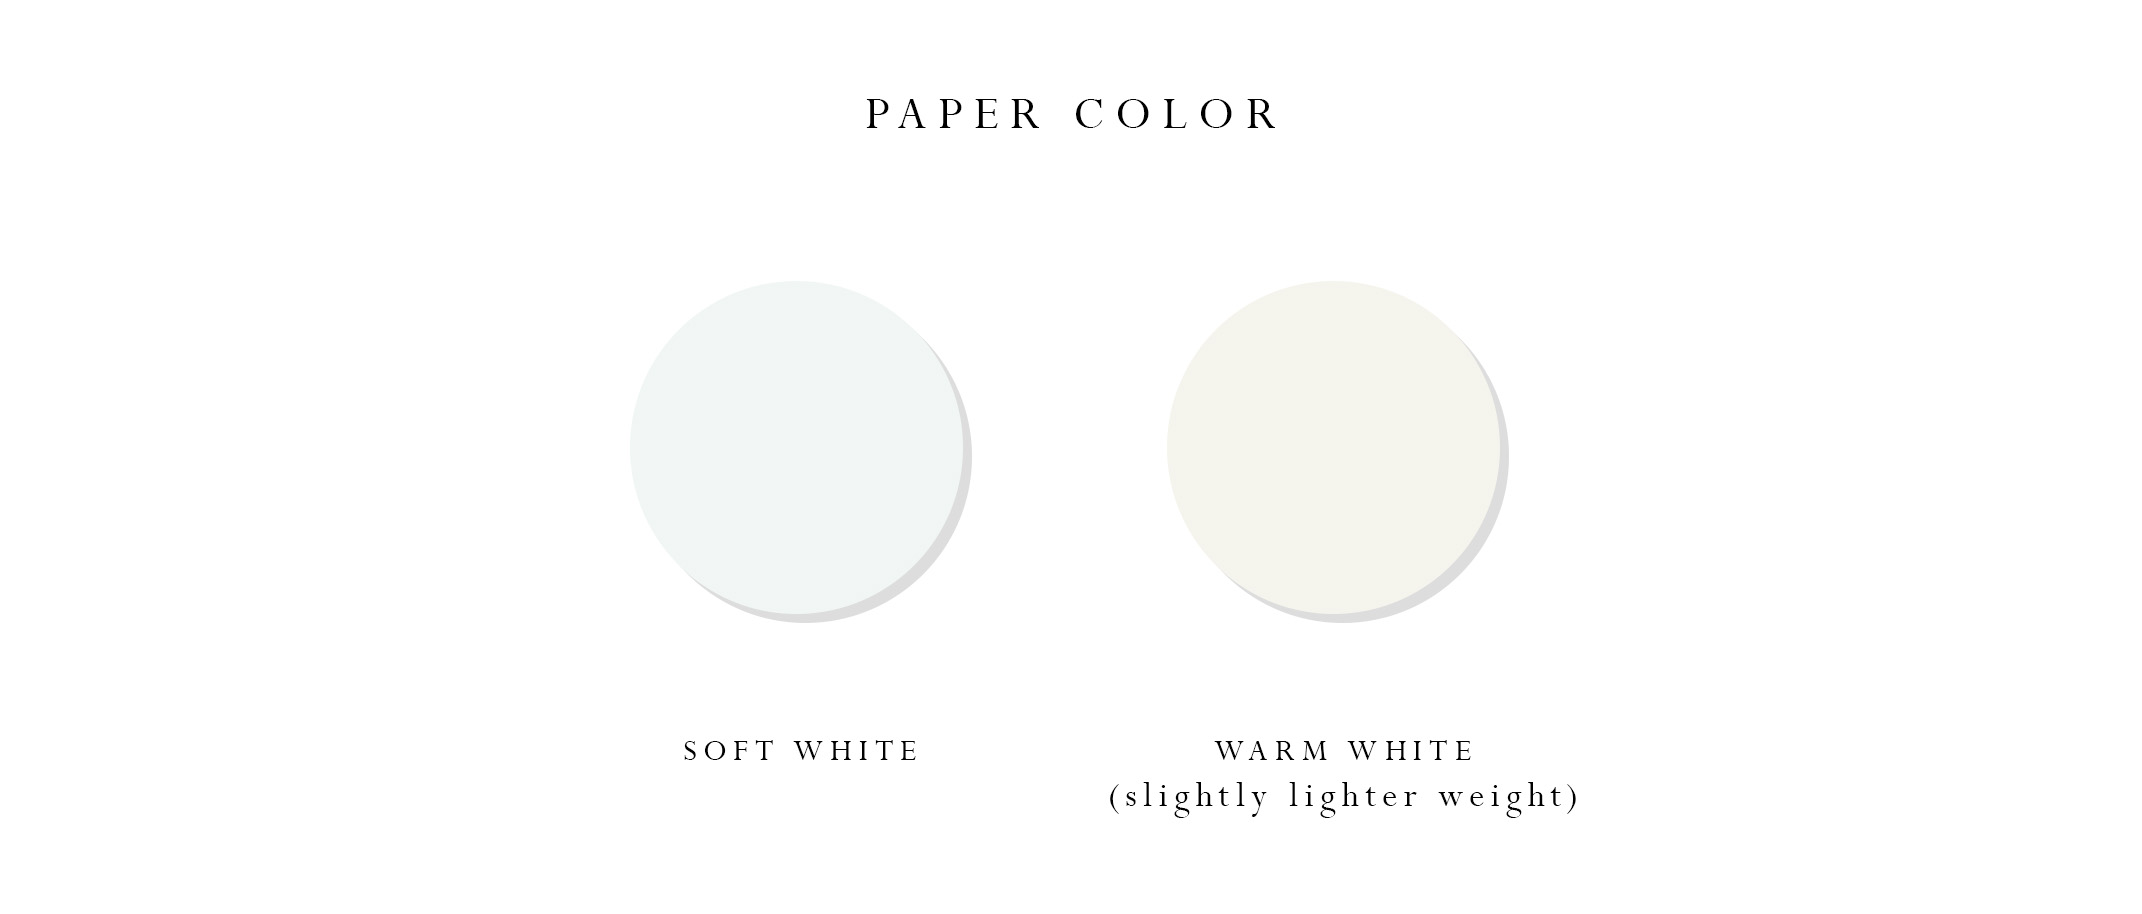 papercolor_samples.jpg